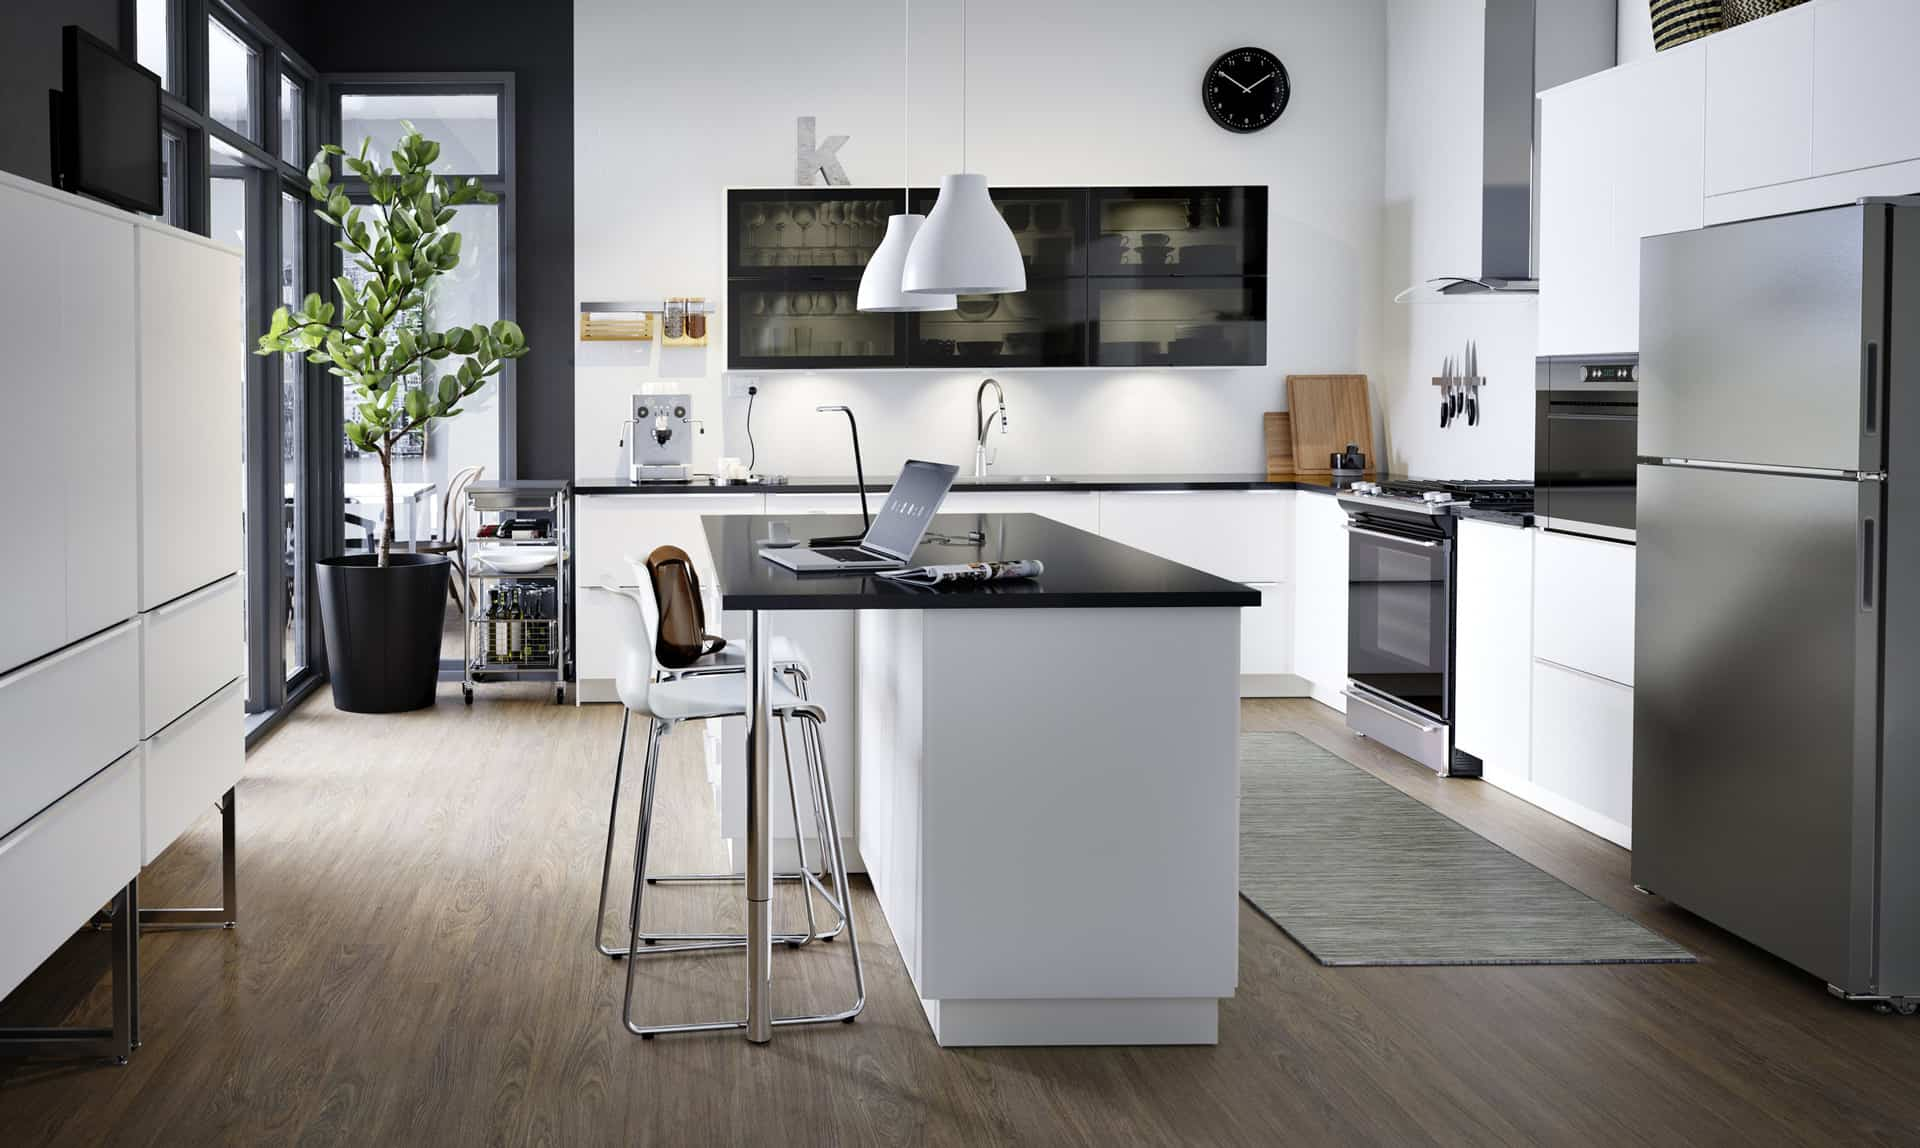 Ikea S New Kitchen Look Book Is The Design Boost Your Week